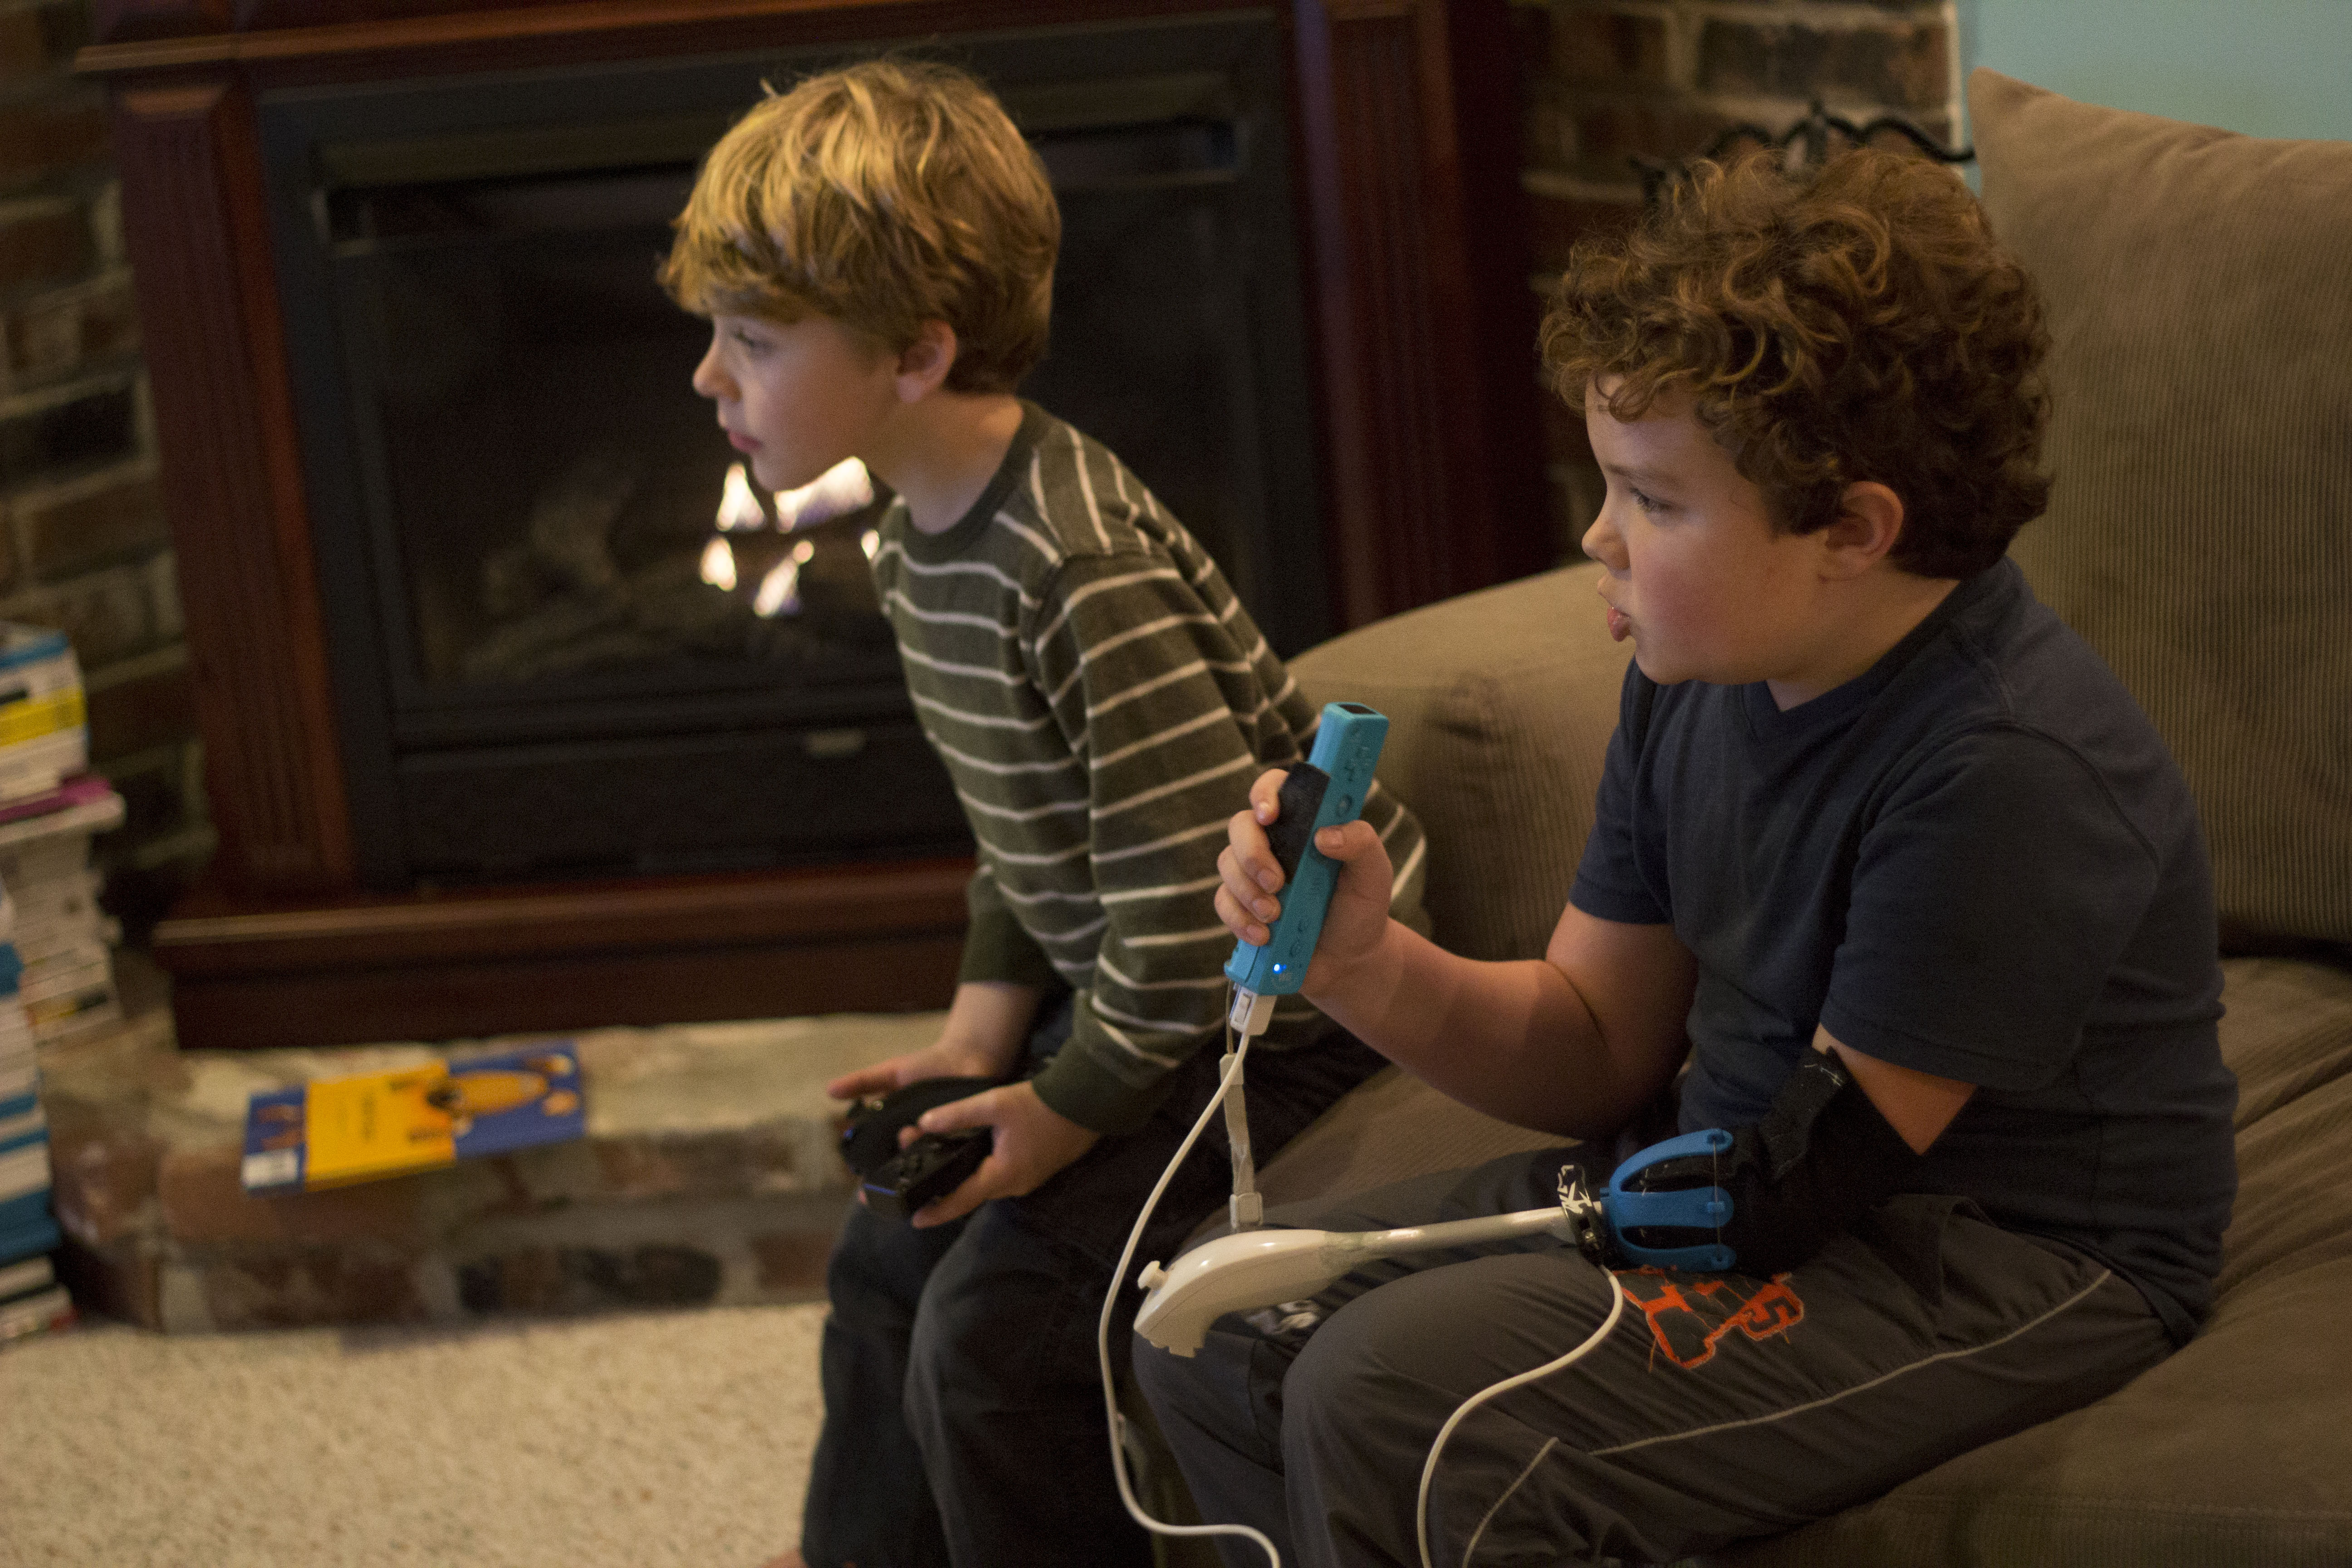 Aidan and his brother playing Wii together.